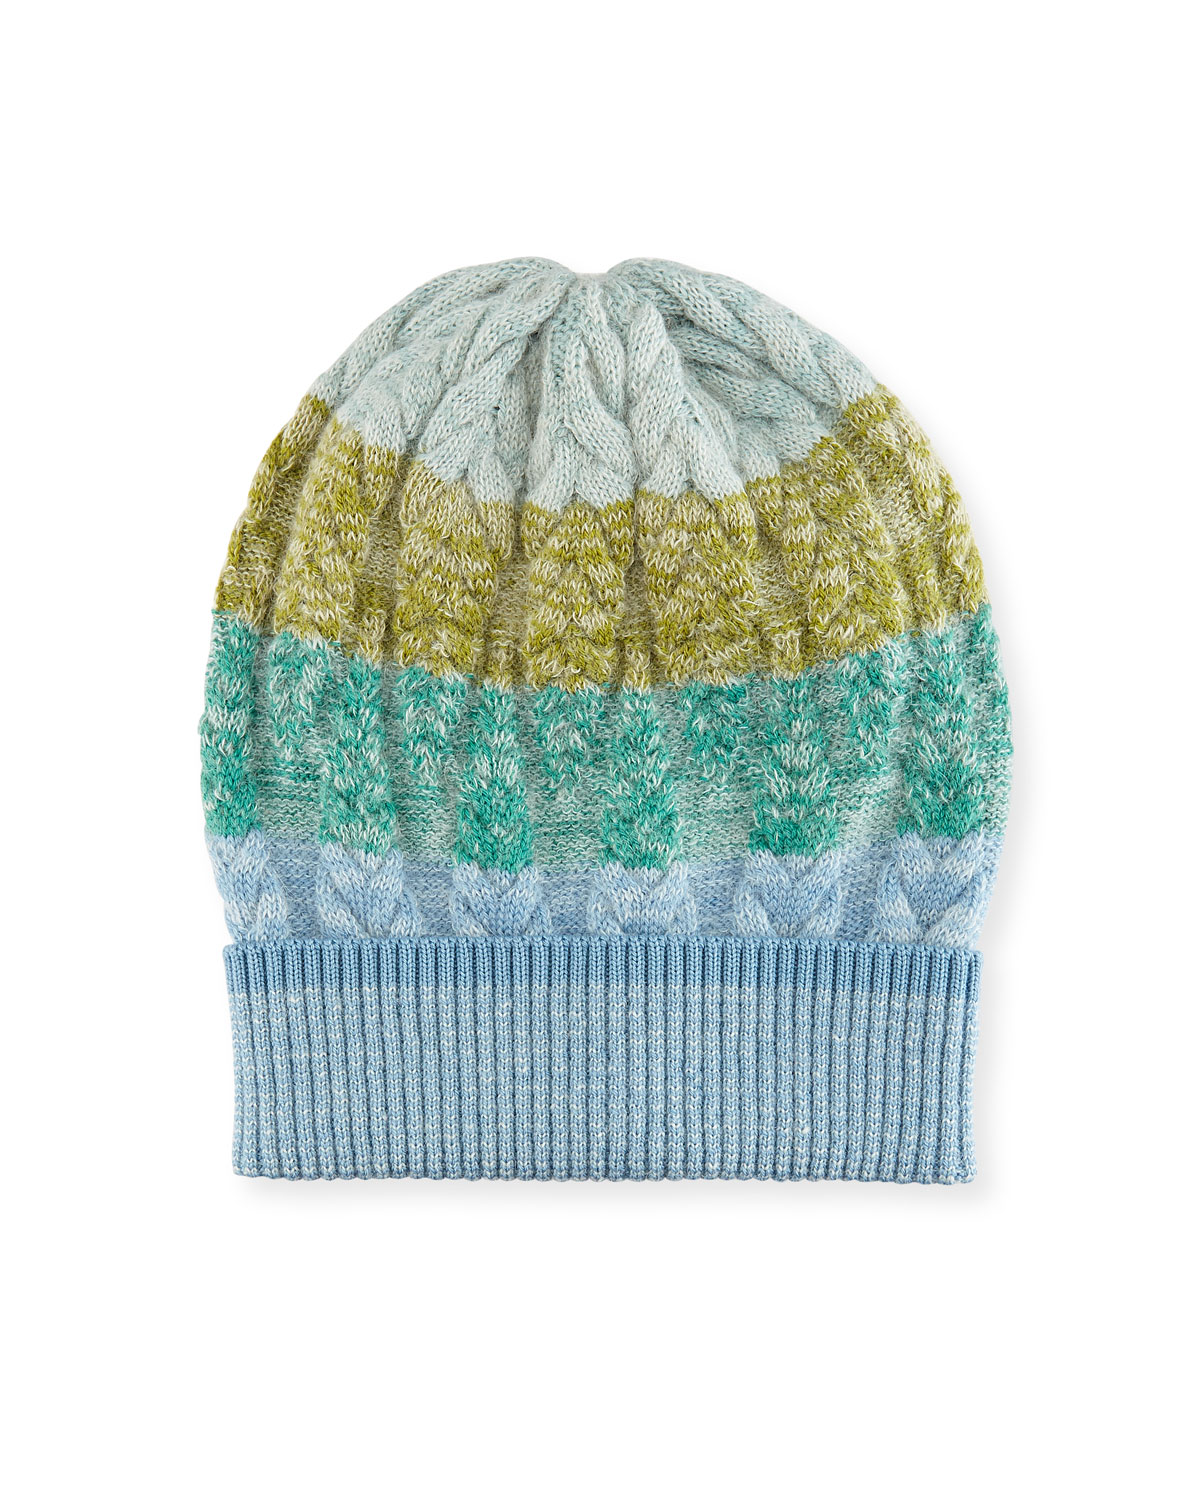 Striped Cable-Knit Beanie Hat